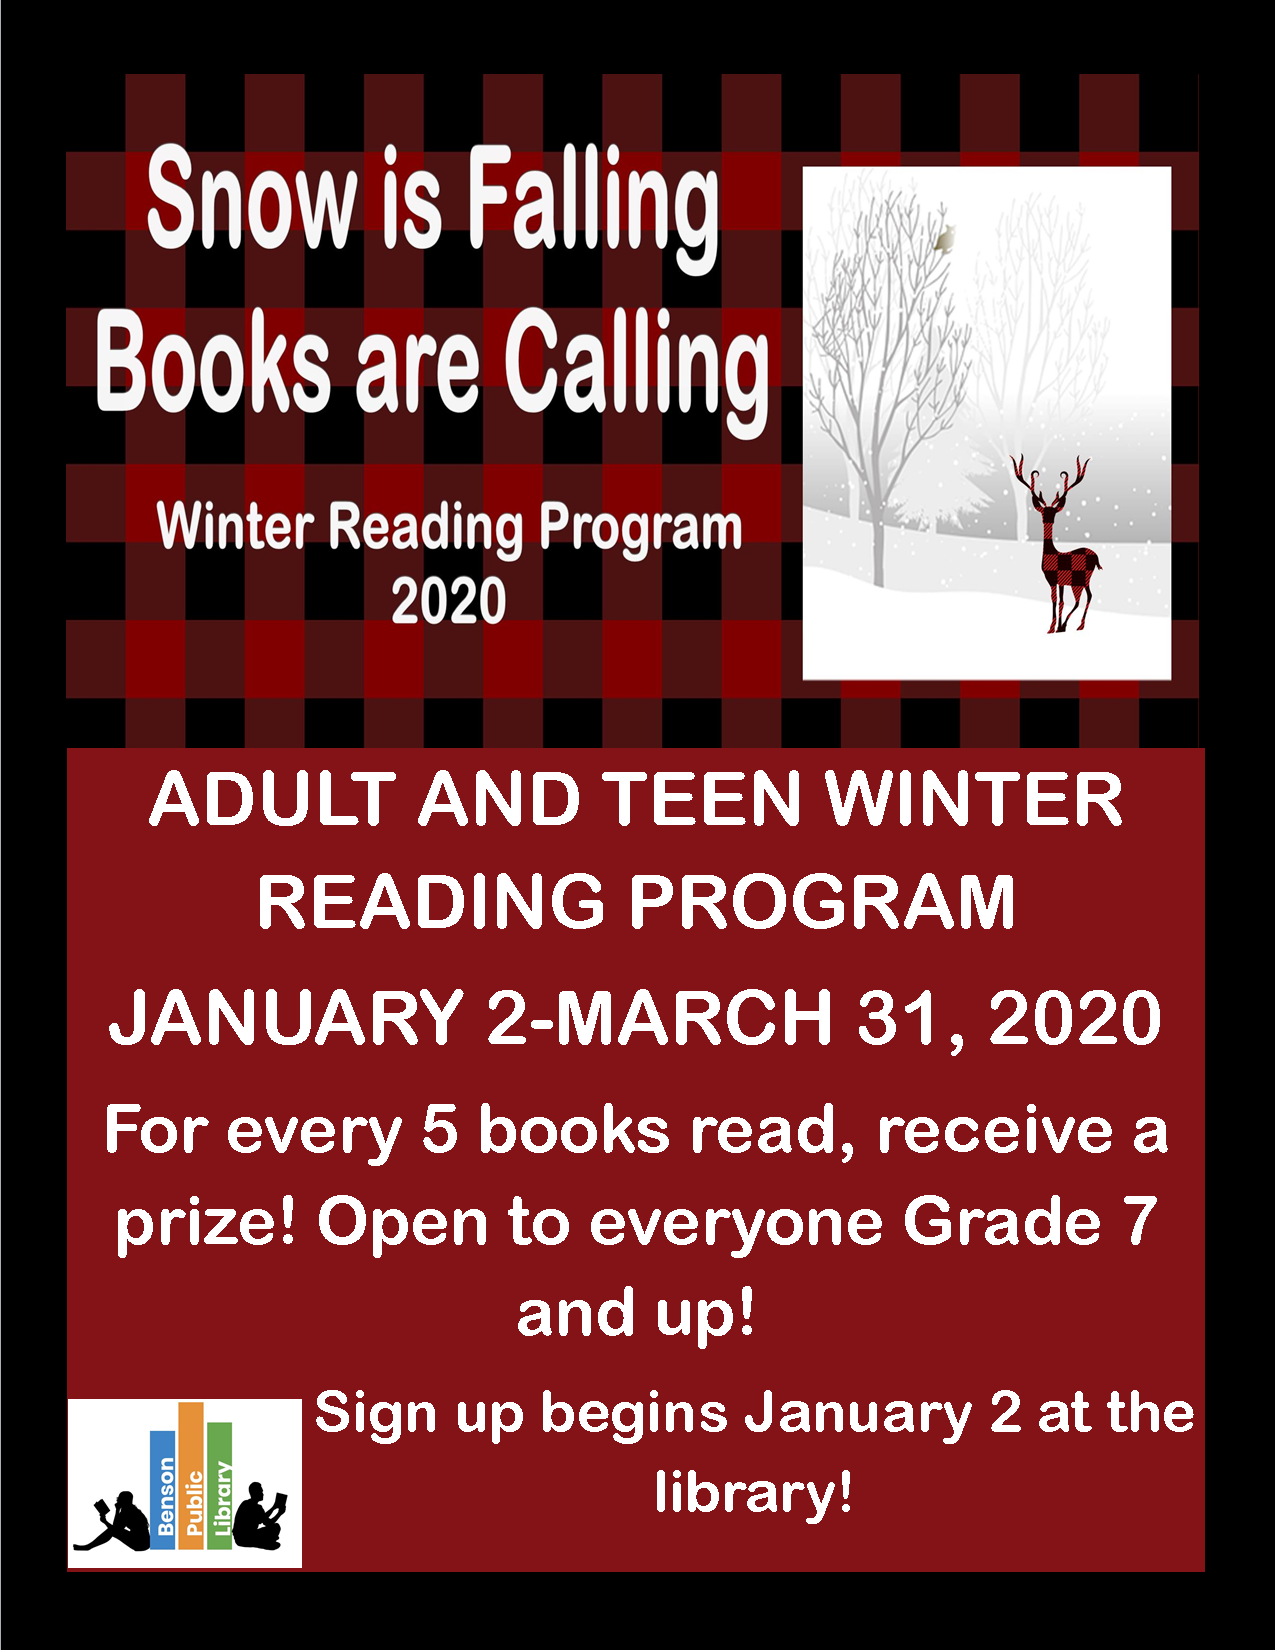 Our 2020 Winter Reading Program runs from January 2 through March 31. It is open to adults and teens in 7th grade and up. Prizes for every 5 books read. Sign up begins January 2.